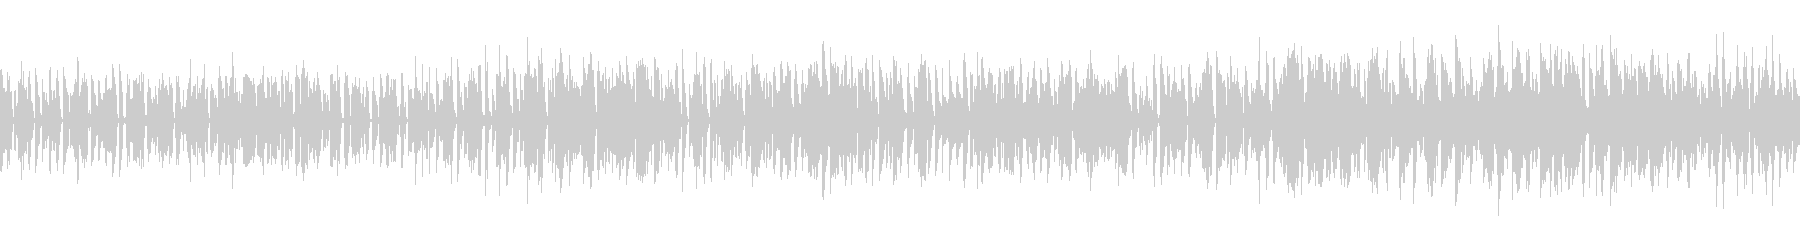 Village in a different world (loop specification)'s unreproduced waveform